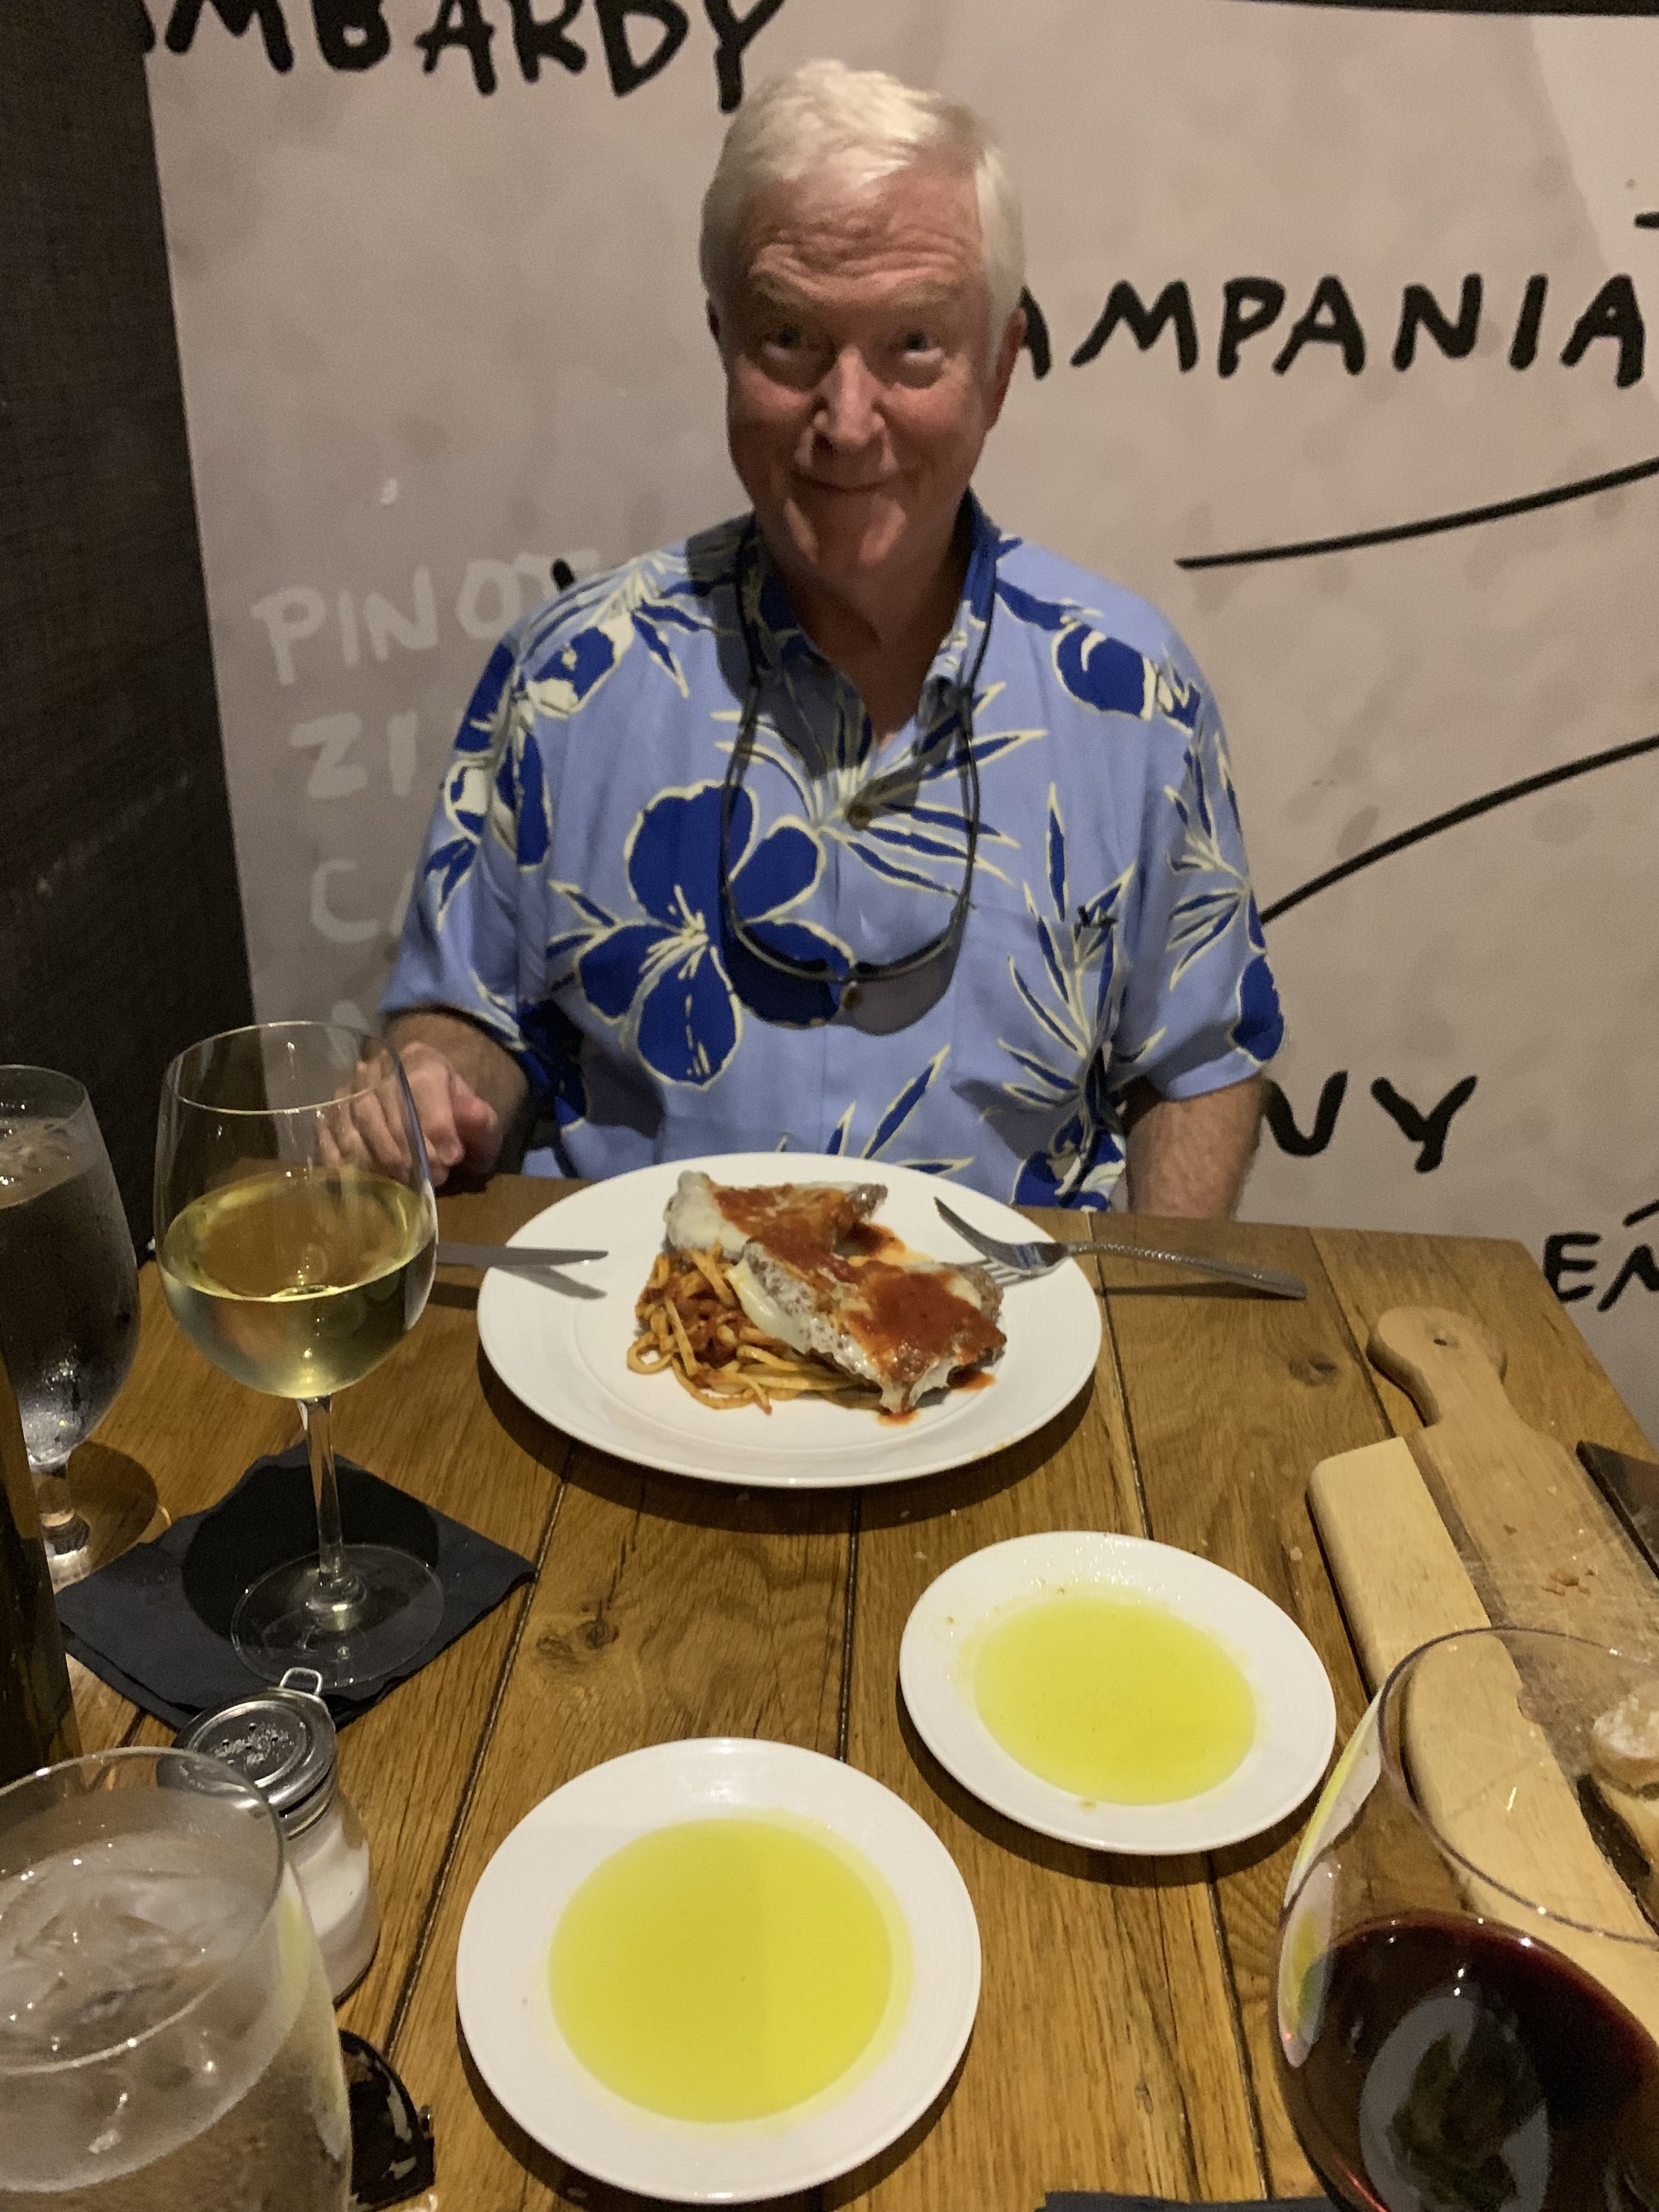 Dad really enjoyed his Chicken Parmigiana and the fresh bread at Vivo Kitchen